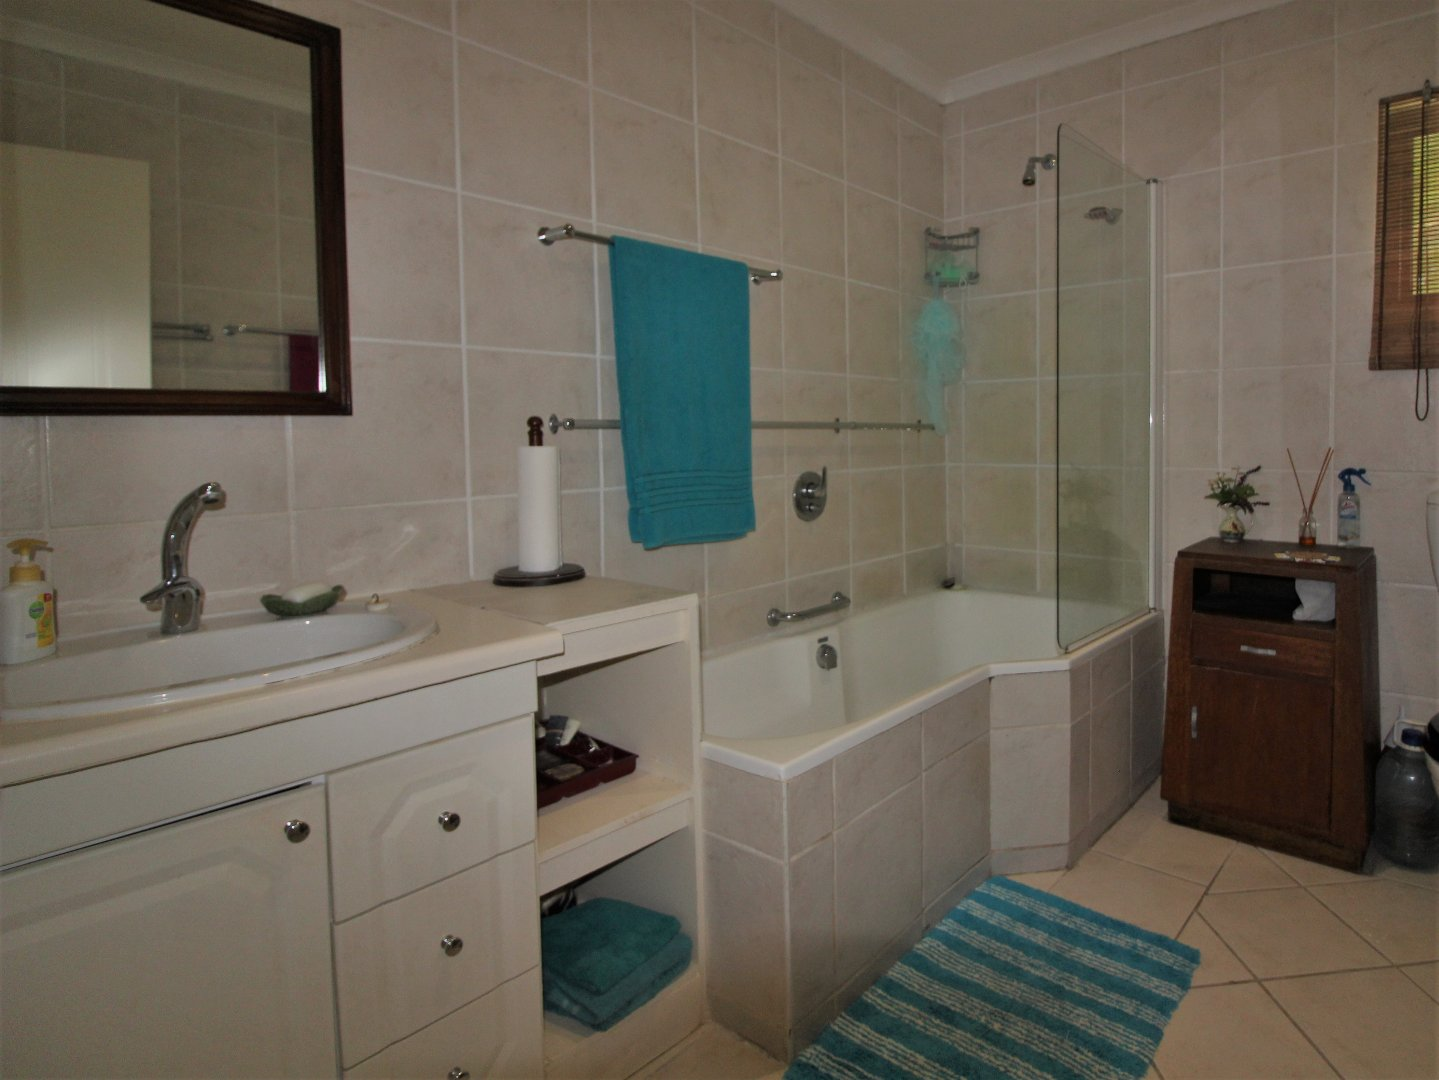 Harkerville A H property for sale. Ref No: 13603569. Picture no 11